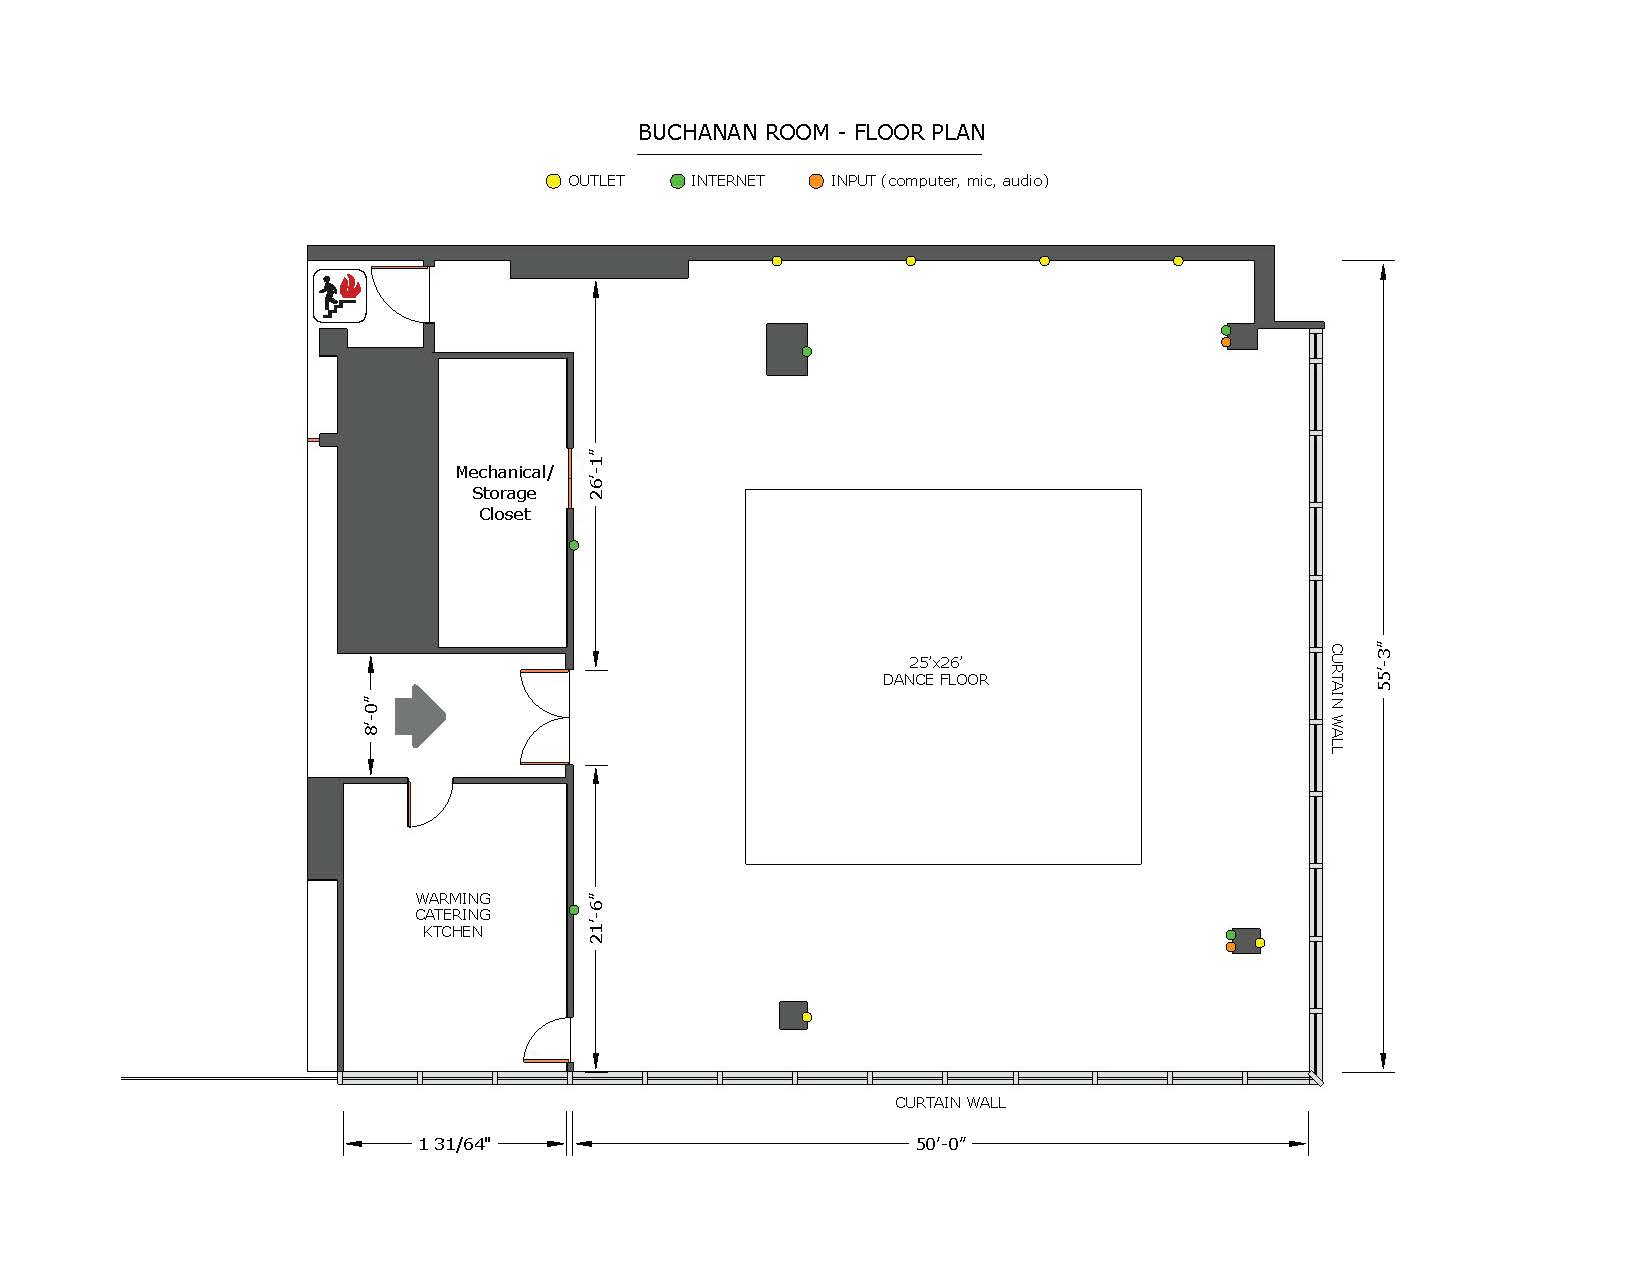 Buchannan Room Floor Plan